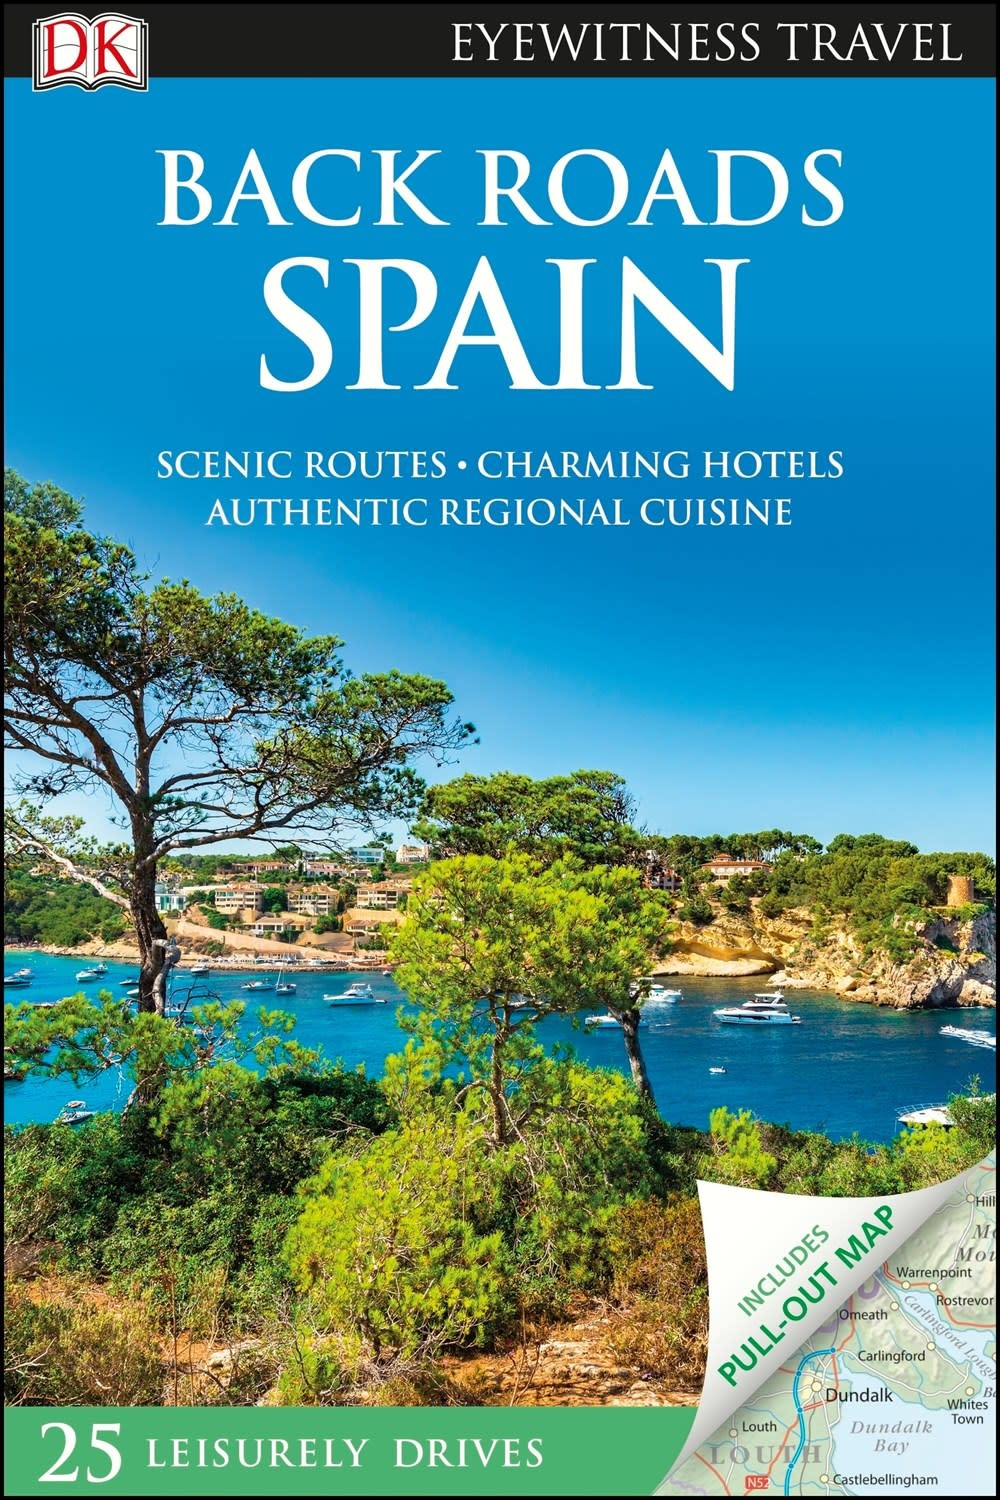 DK Eyewitness Travel DK Eyewitness Travel Back Roads: Spain